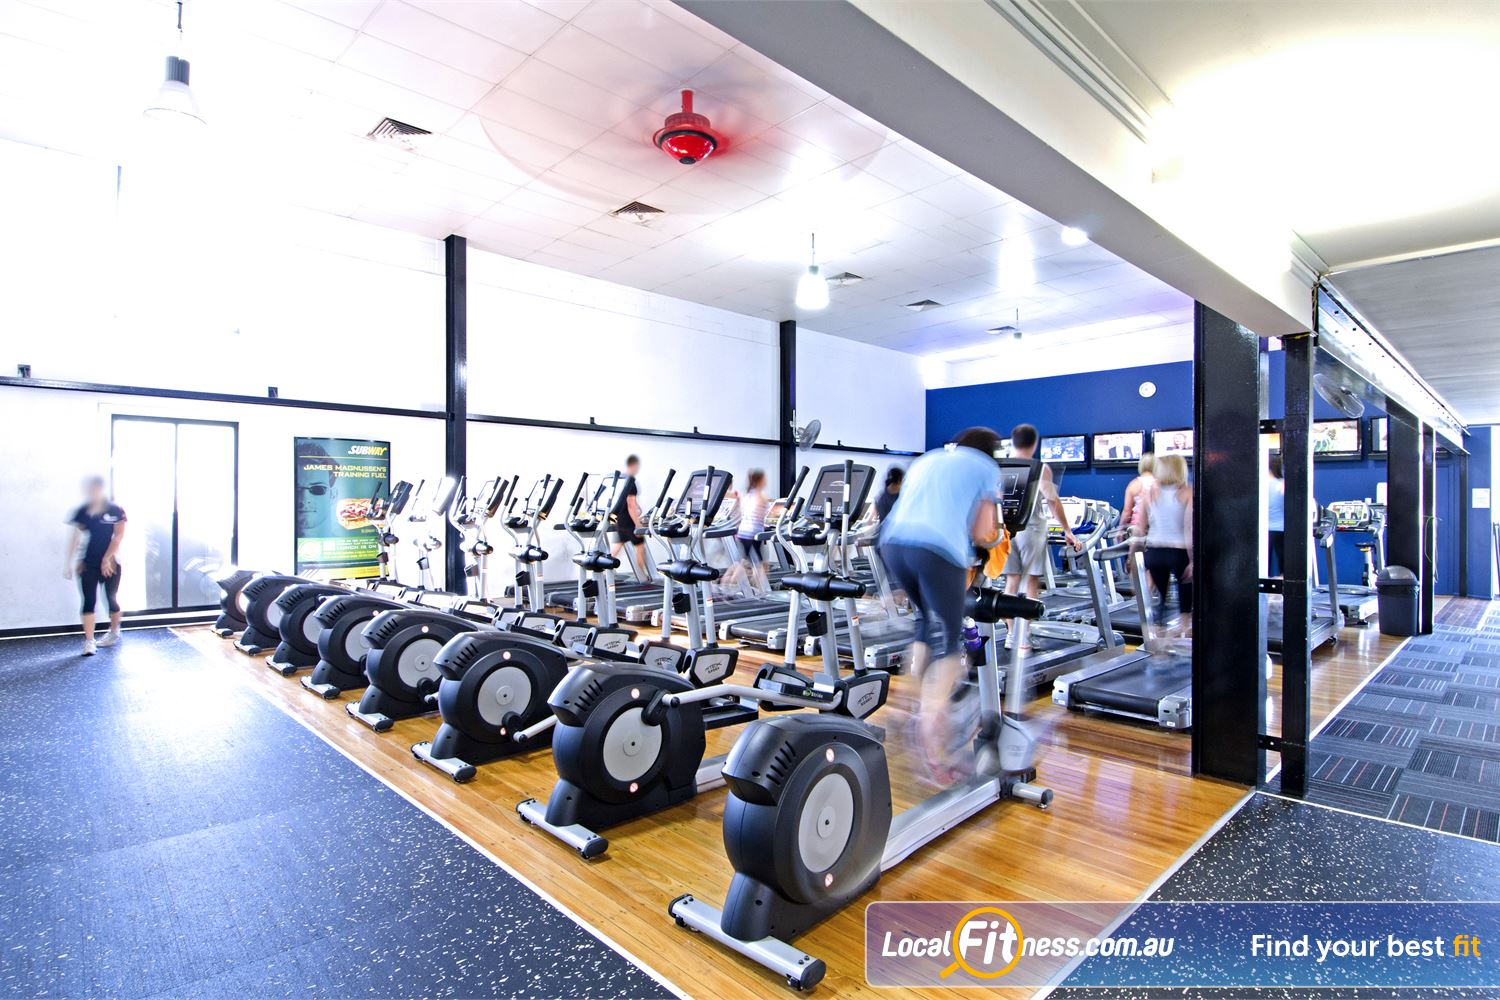 Goodlife Health Clubs Graceville Goodlife Graceville gym provides multiple machines so you don't have to wait.